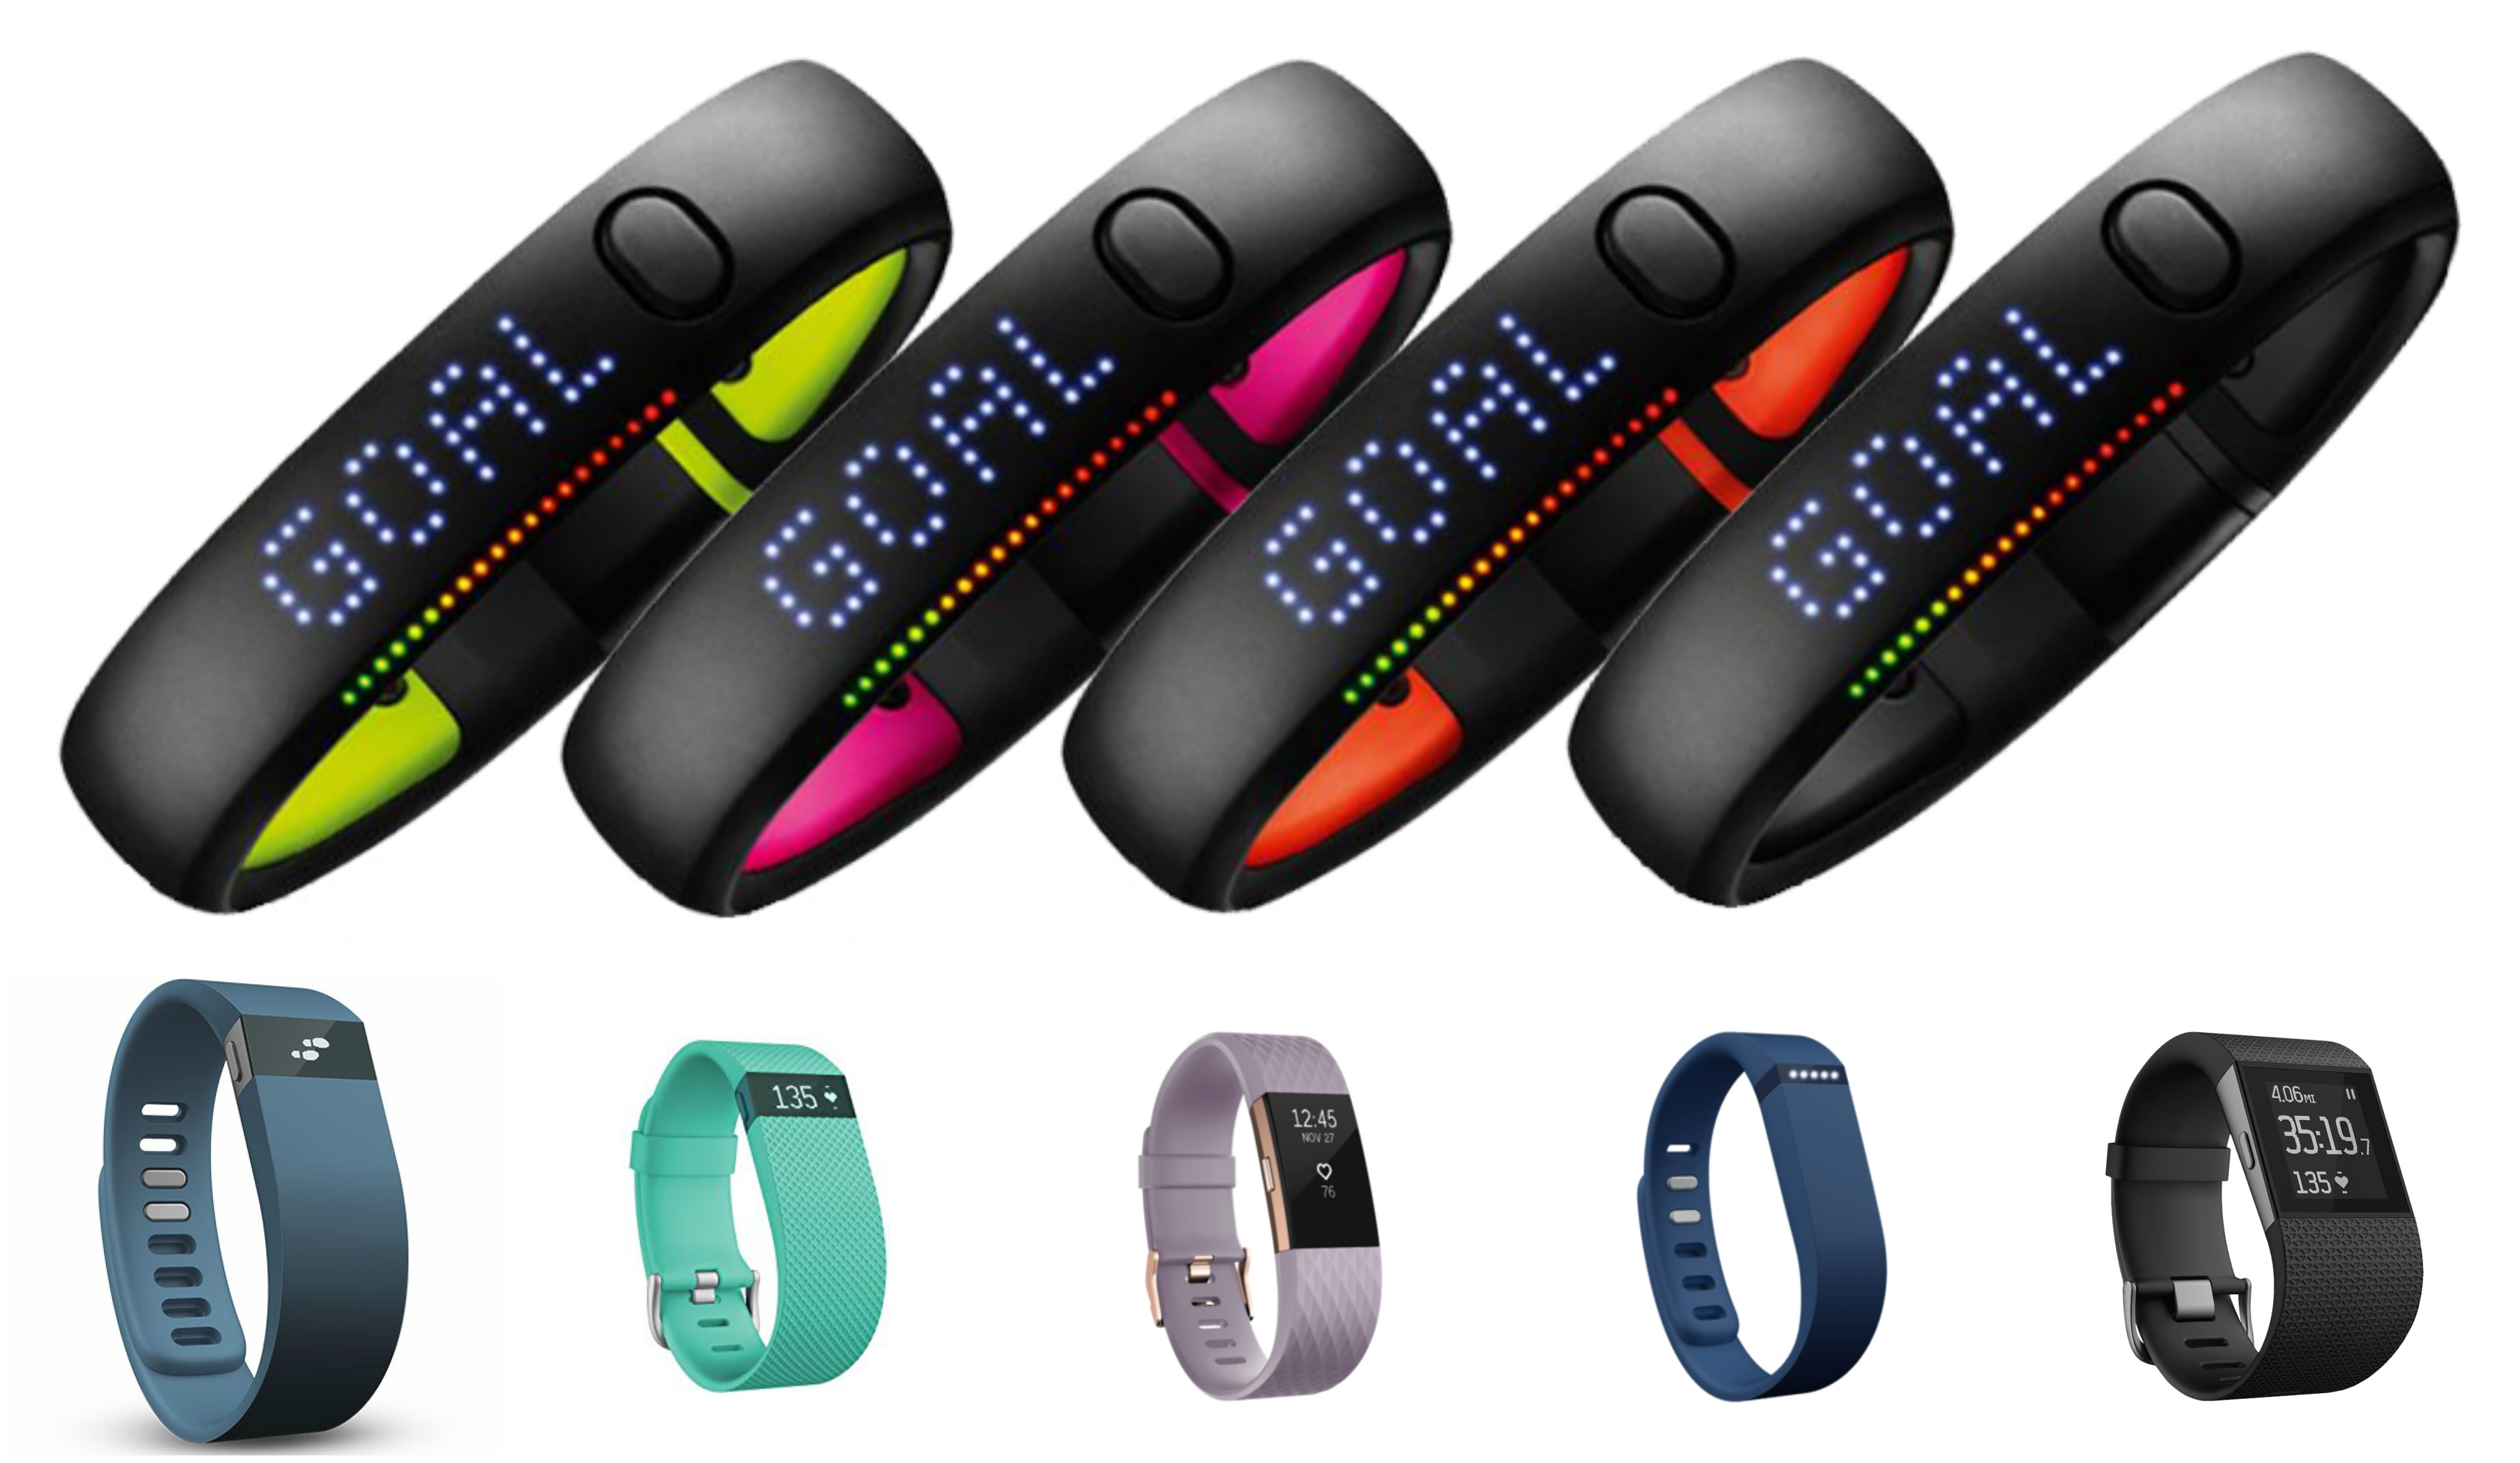 Nike FuelBand vs Fitbit charge comparison